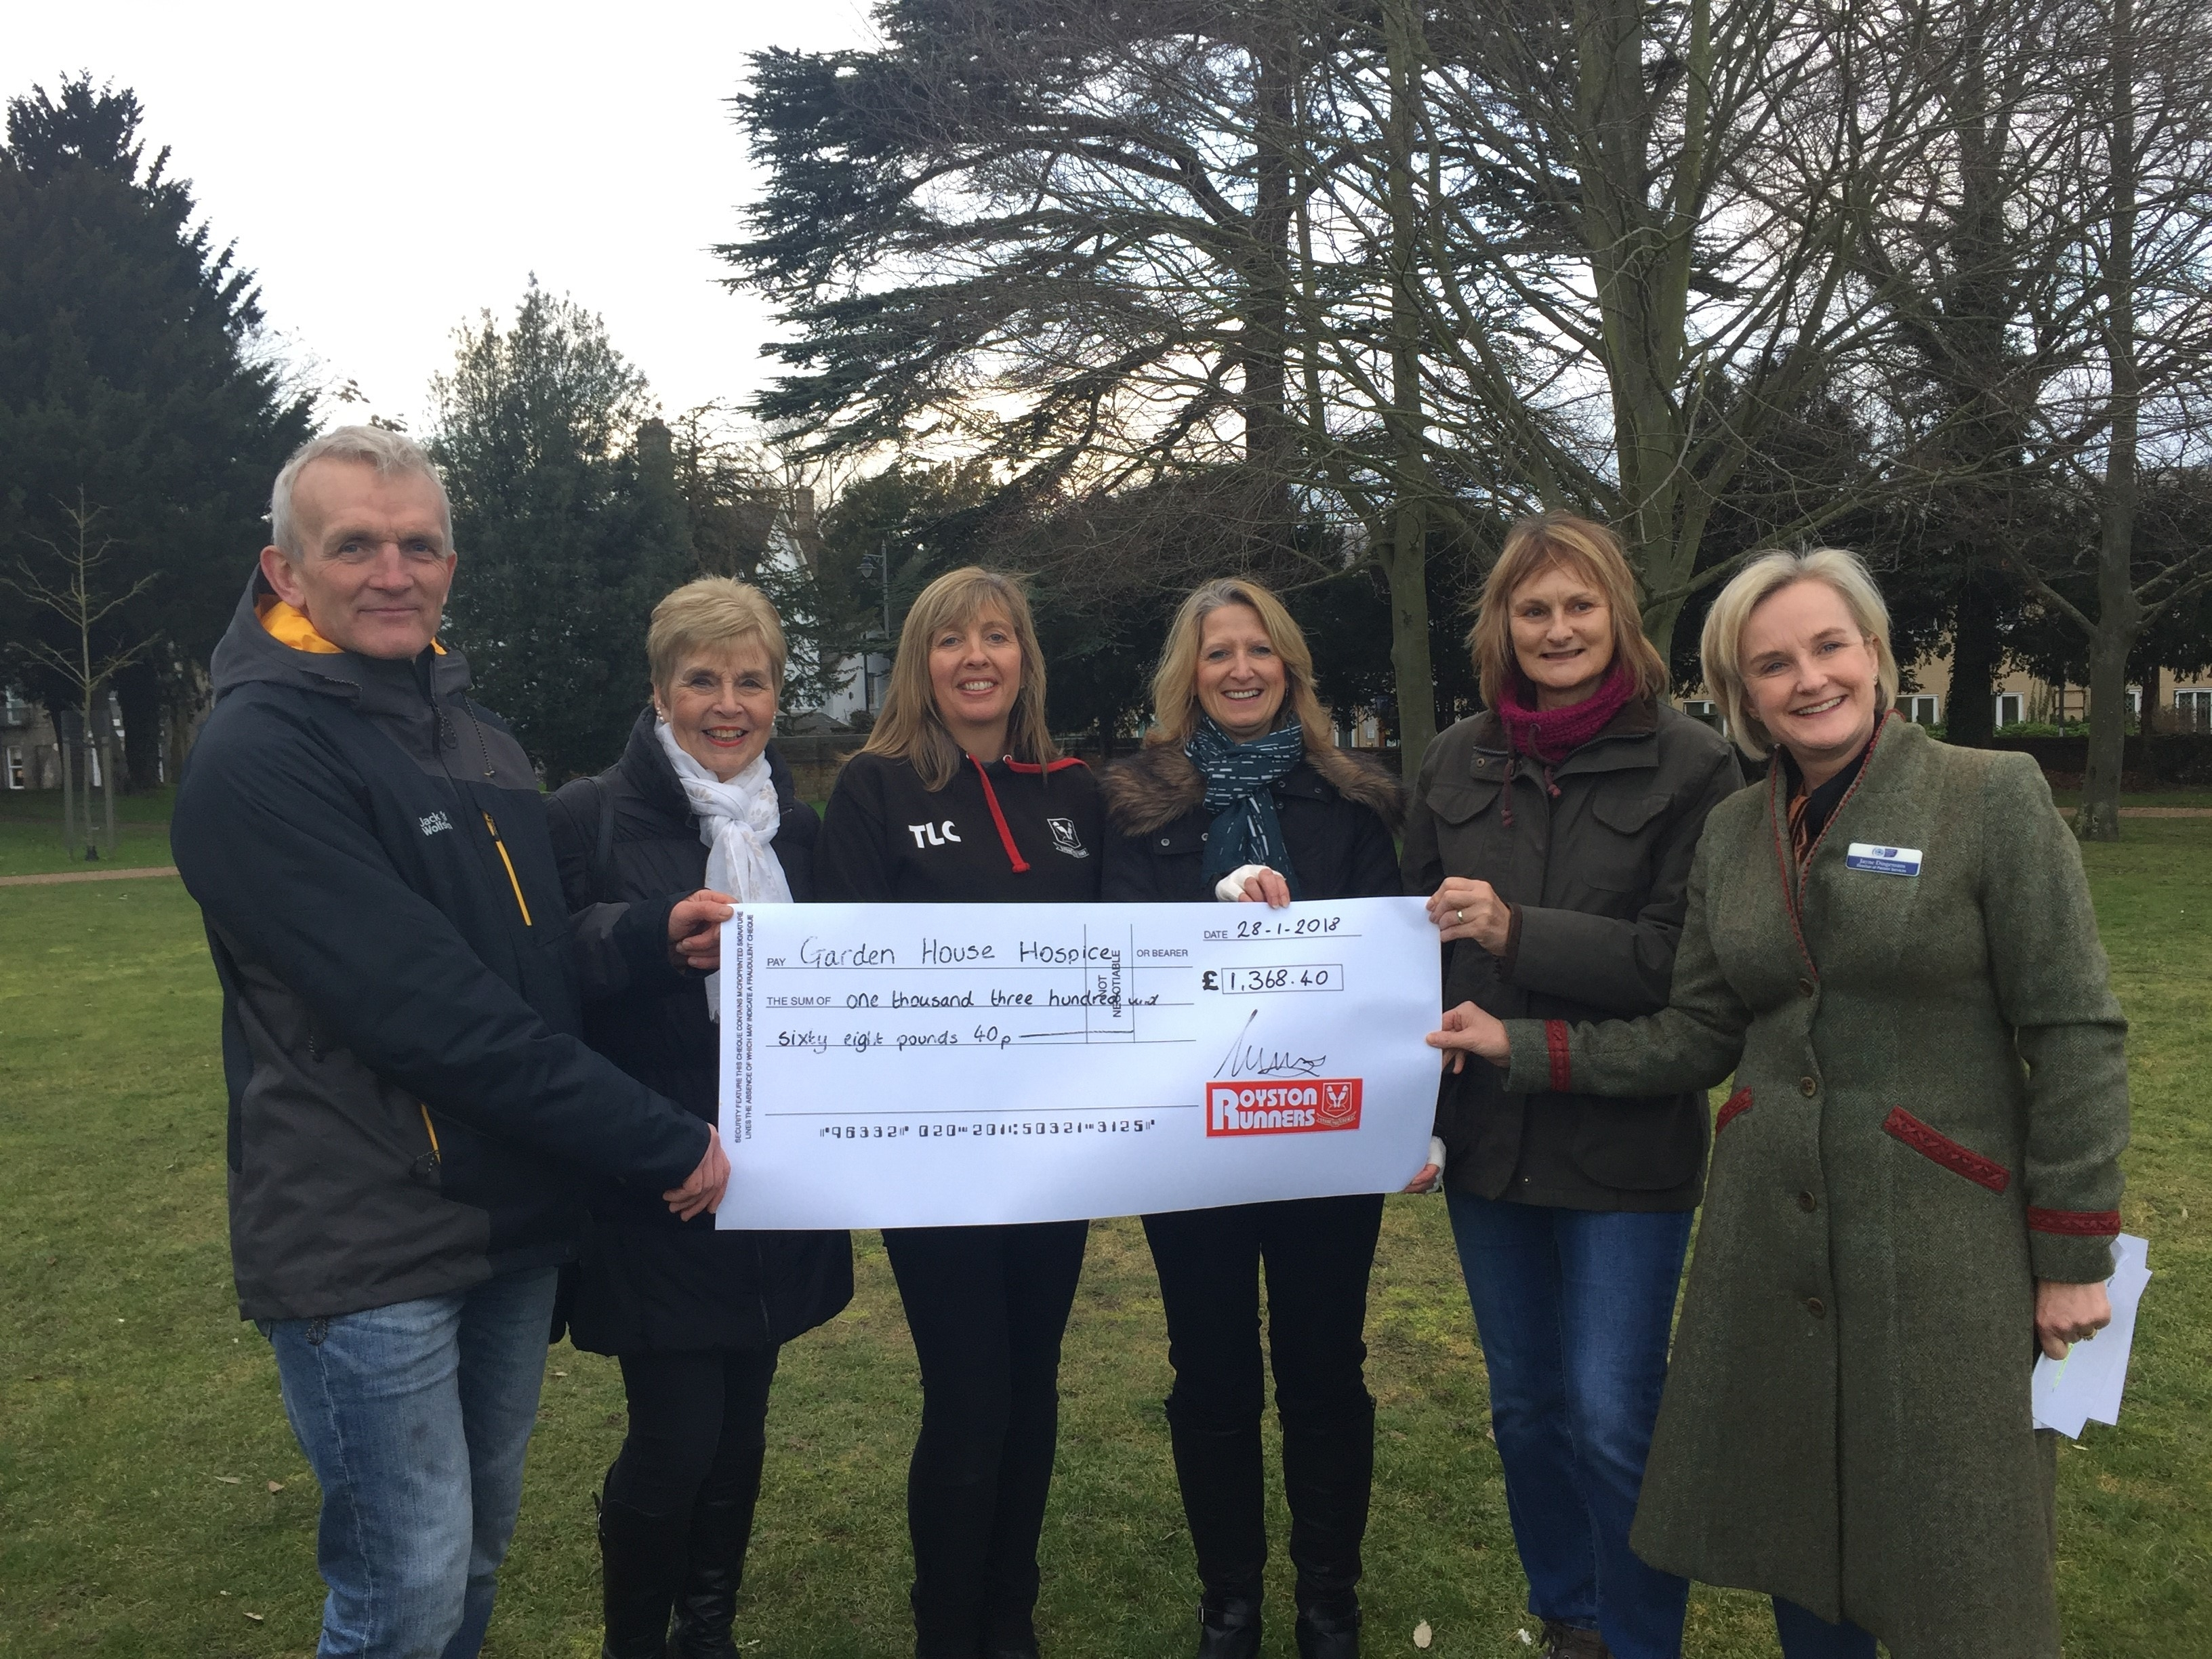 Garden House Hospice - Our Latest Donation - Royston Runners pertaining to Garden House Hospice At Home